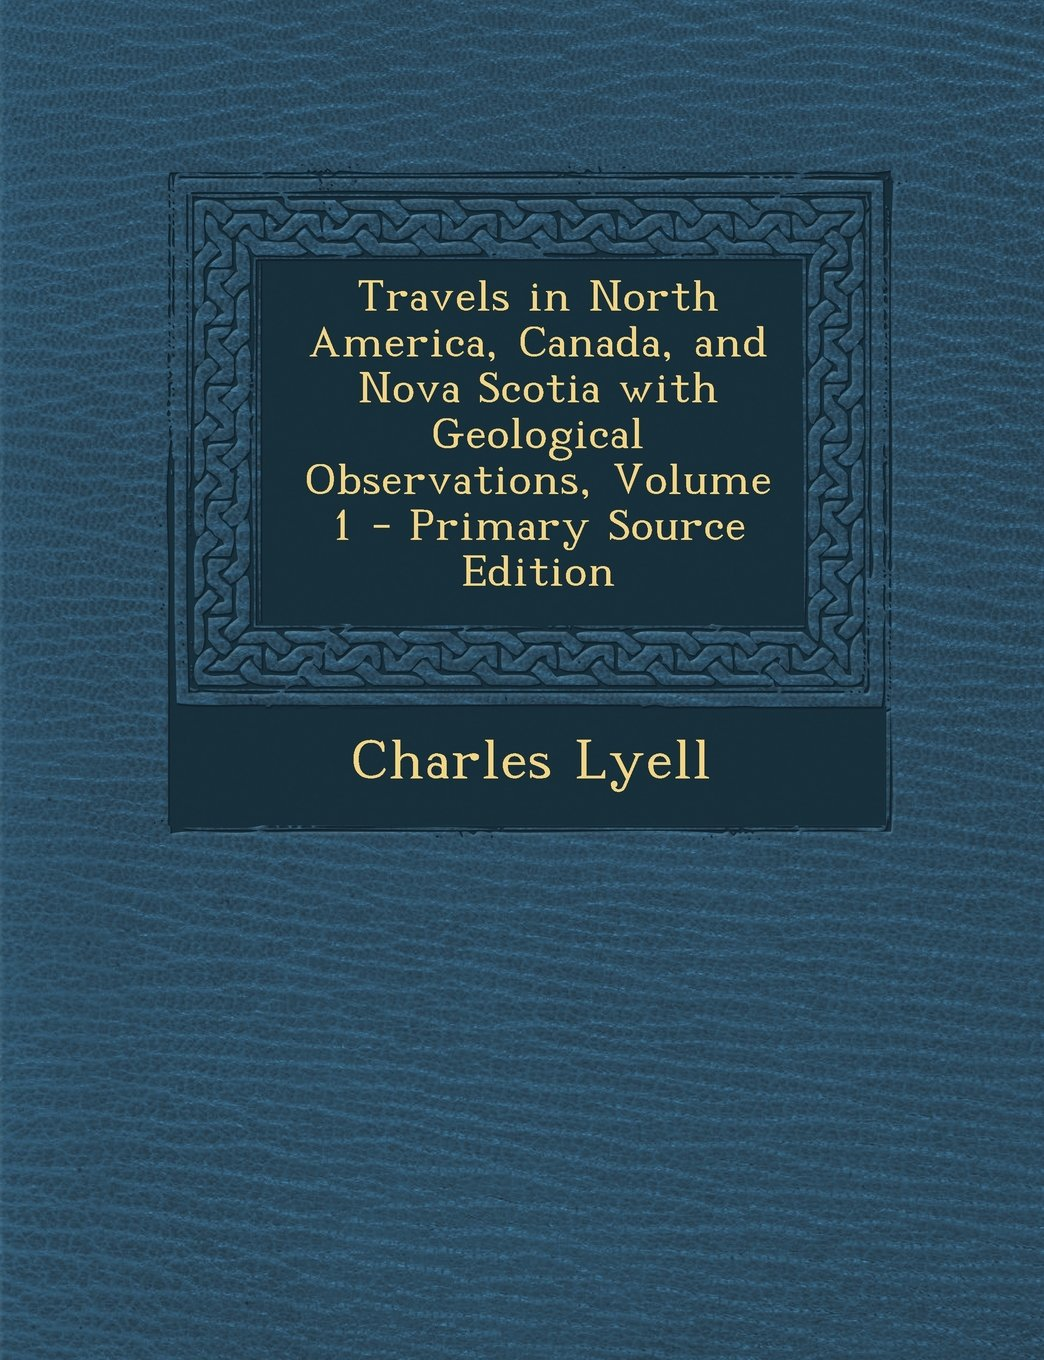 Read Online Travels in North America, Canada, and Nova Scotia with Geological Observations, Volume 1 - Primary Source Edition pdf epub